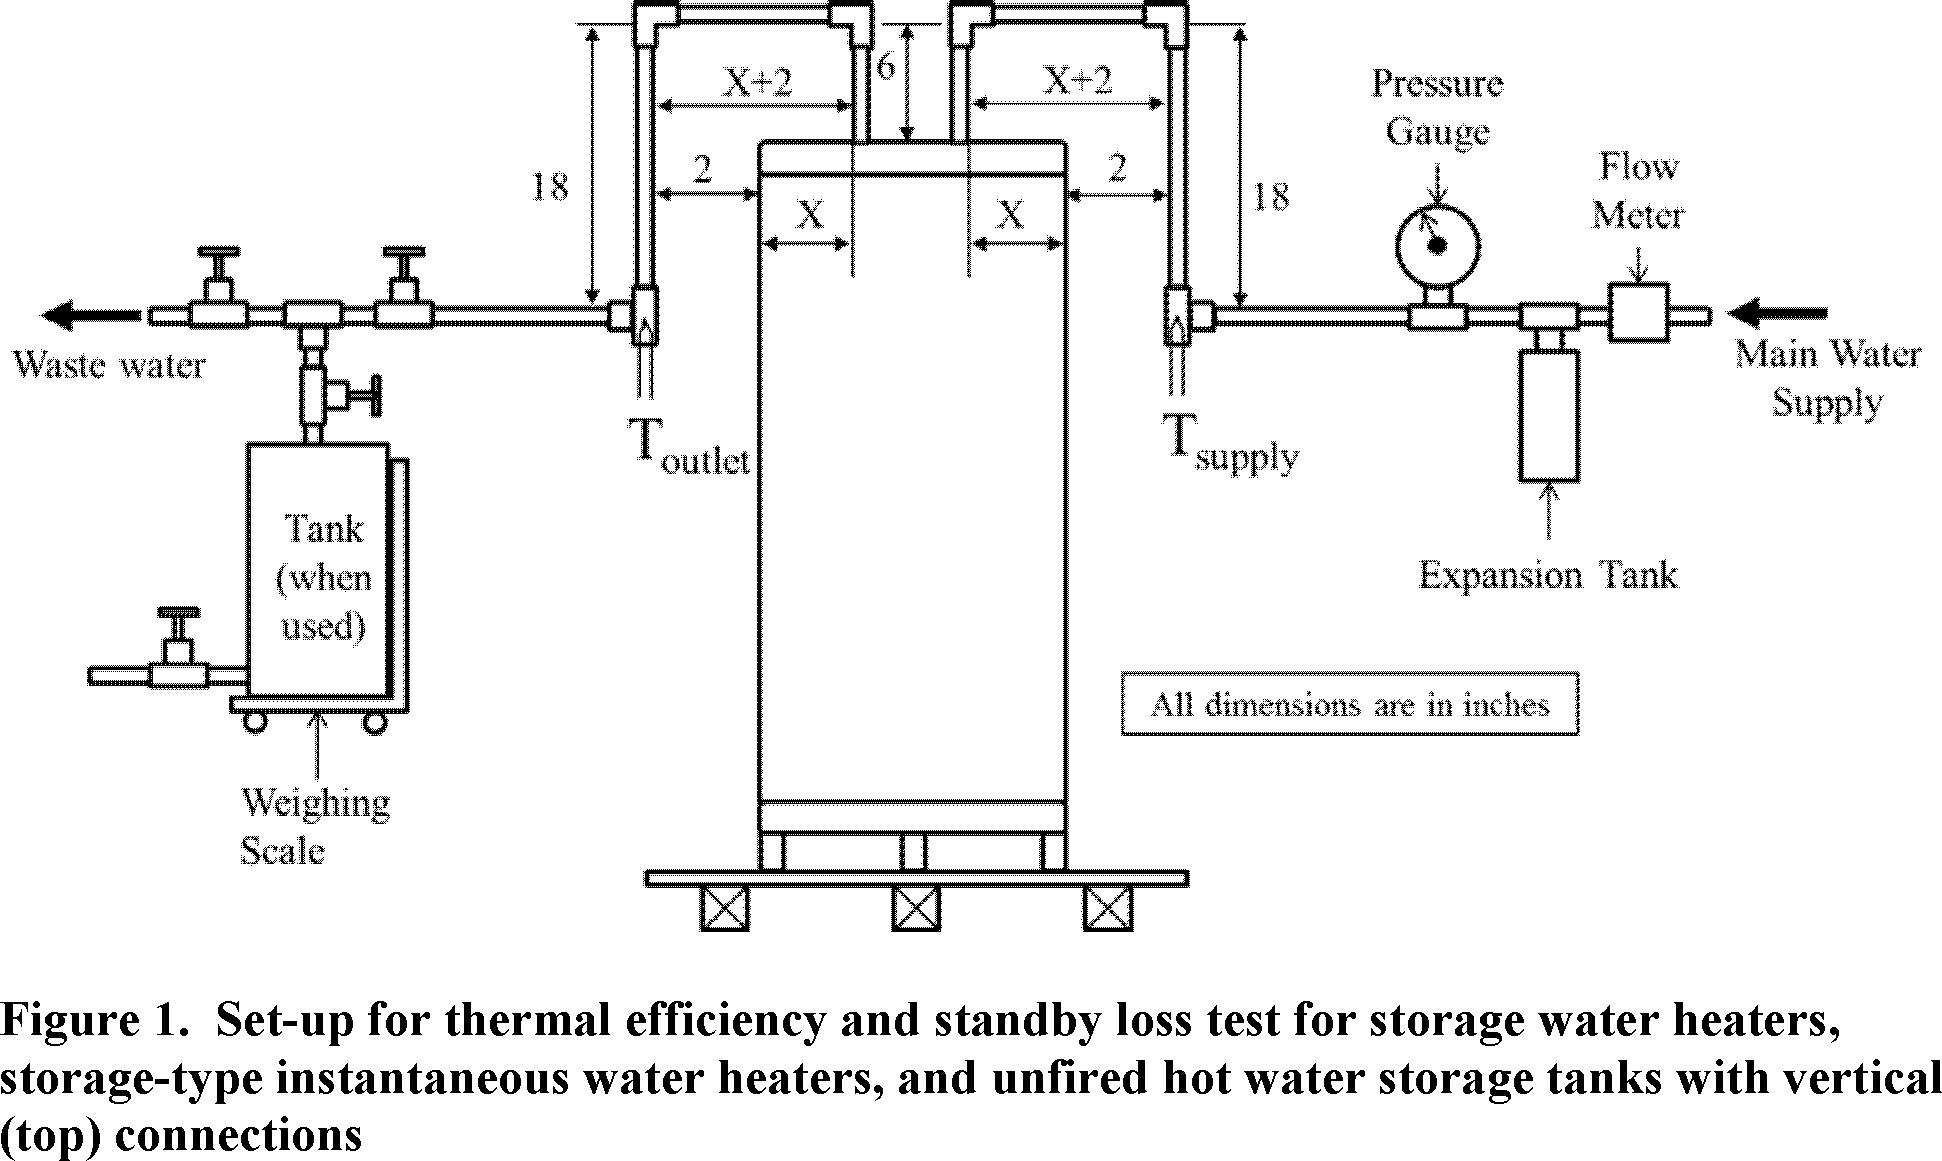 vertical hot water storage tank piping diagram wiring diagrams u2022 rh 17 eap ing de hot water heater plumbing diagram hot water heater plumbing diagram [ 1942 x 1161 Pixel ]